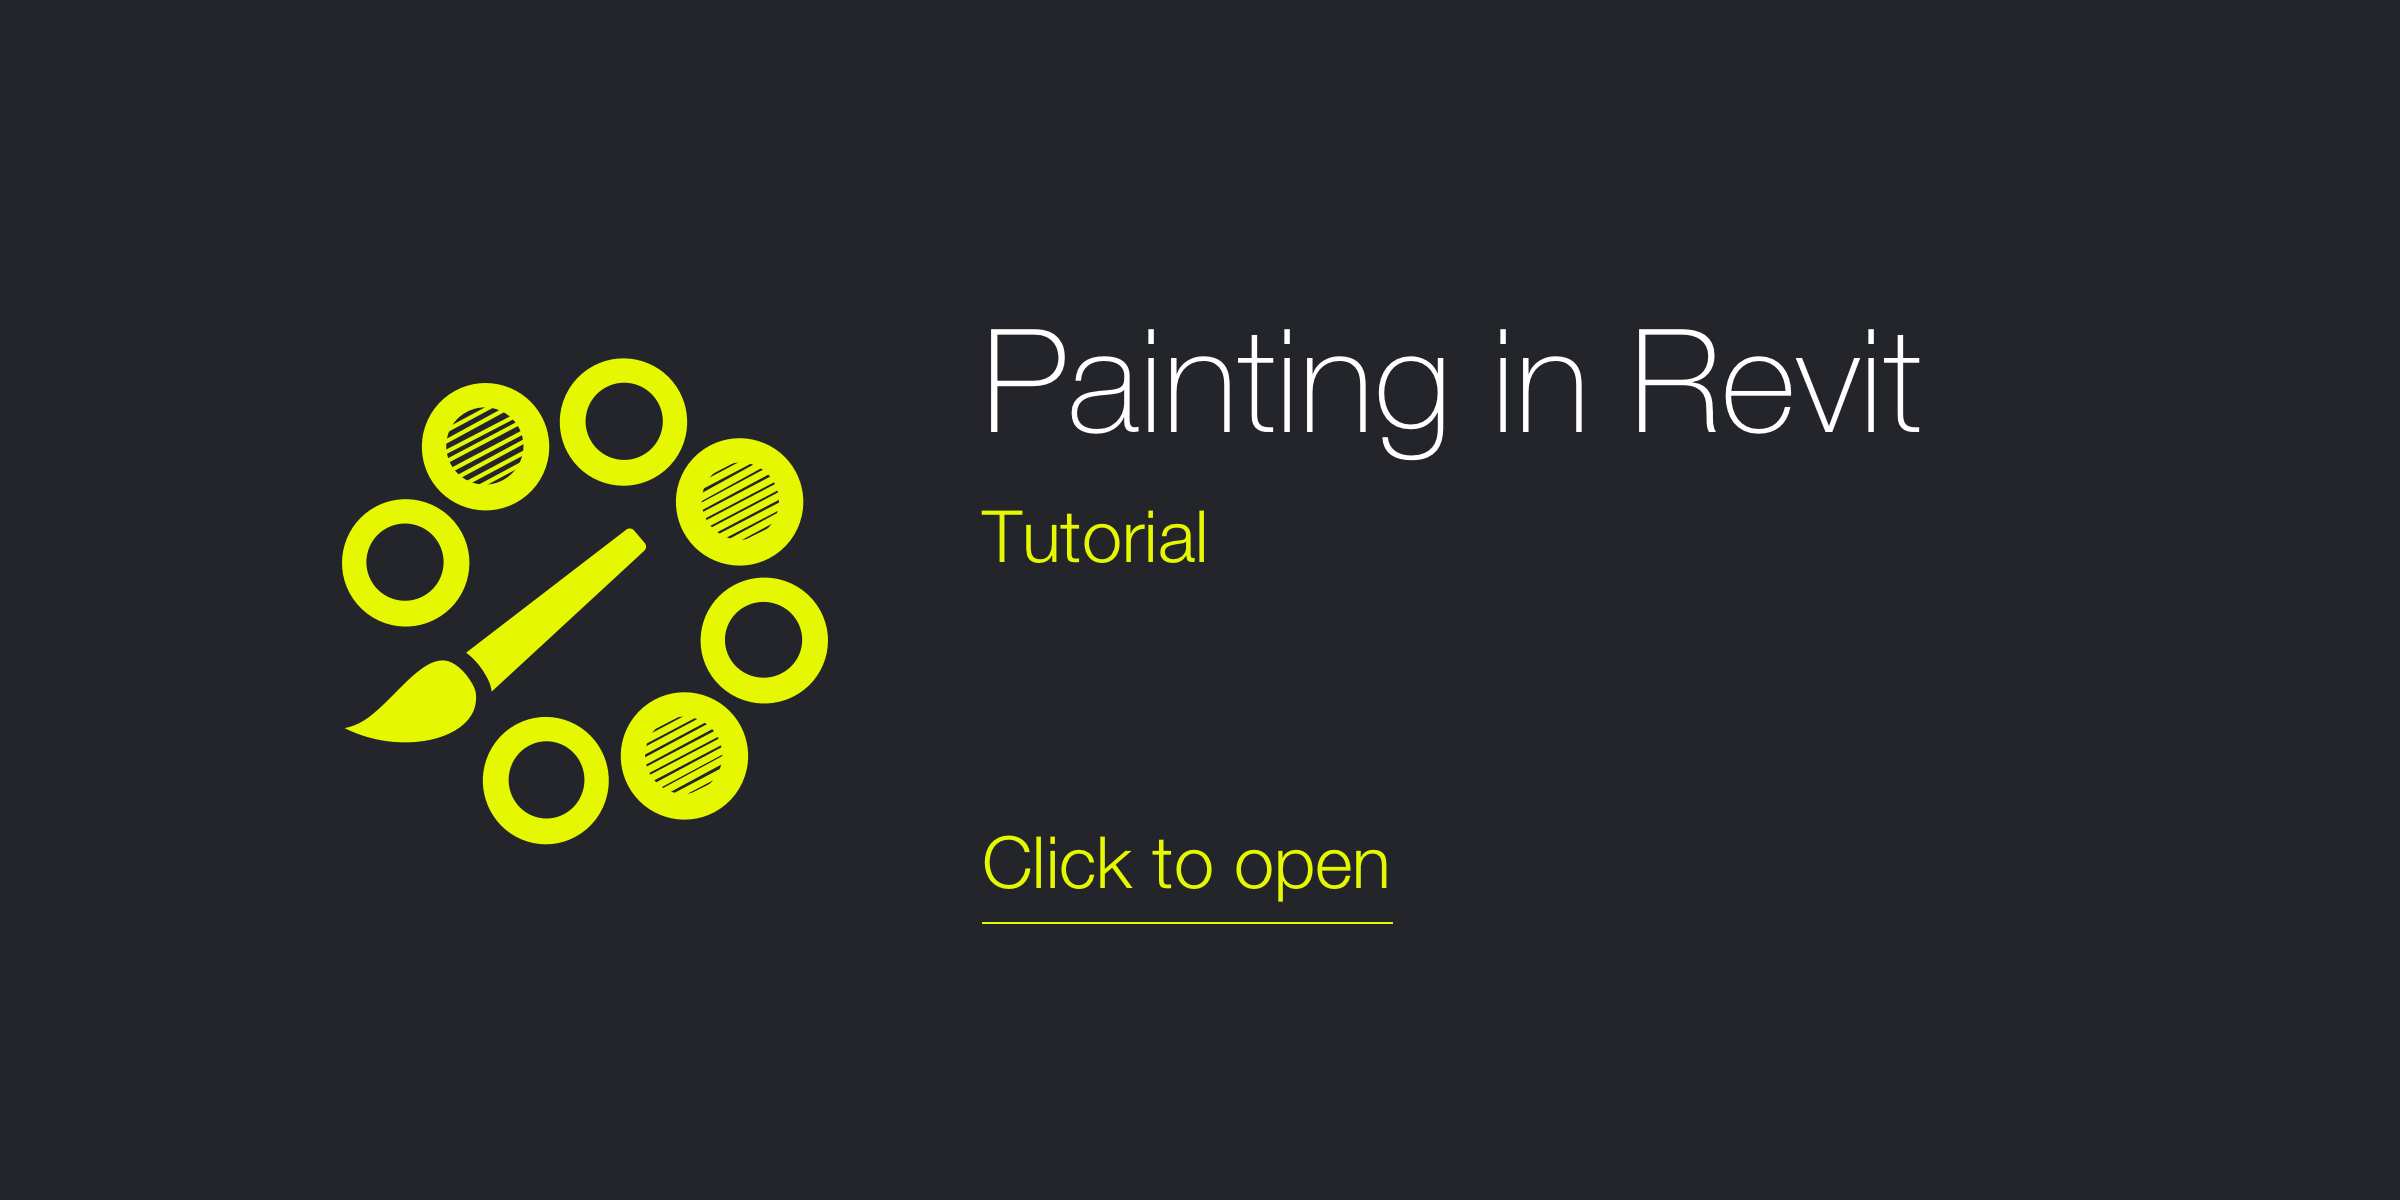 Painting in Revit